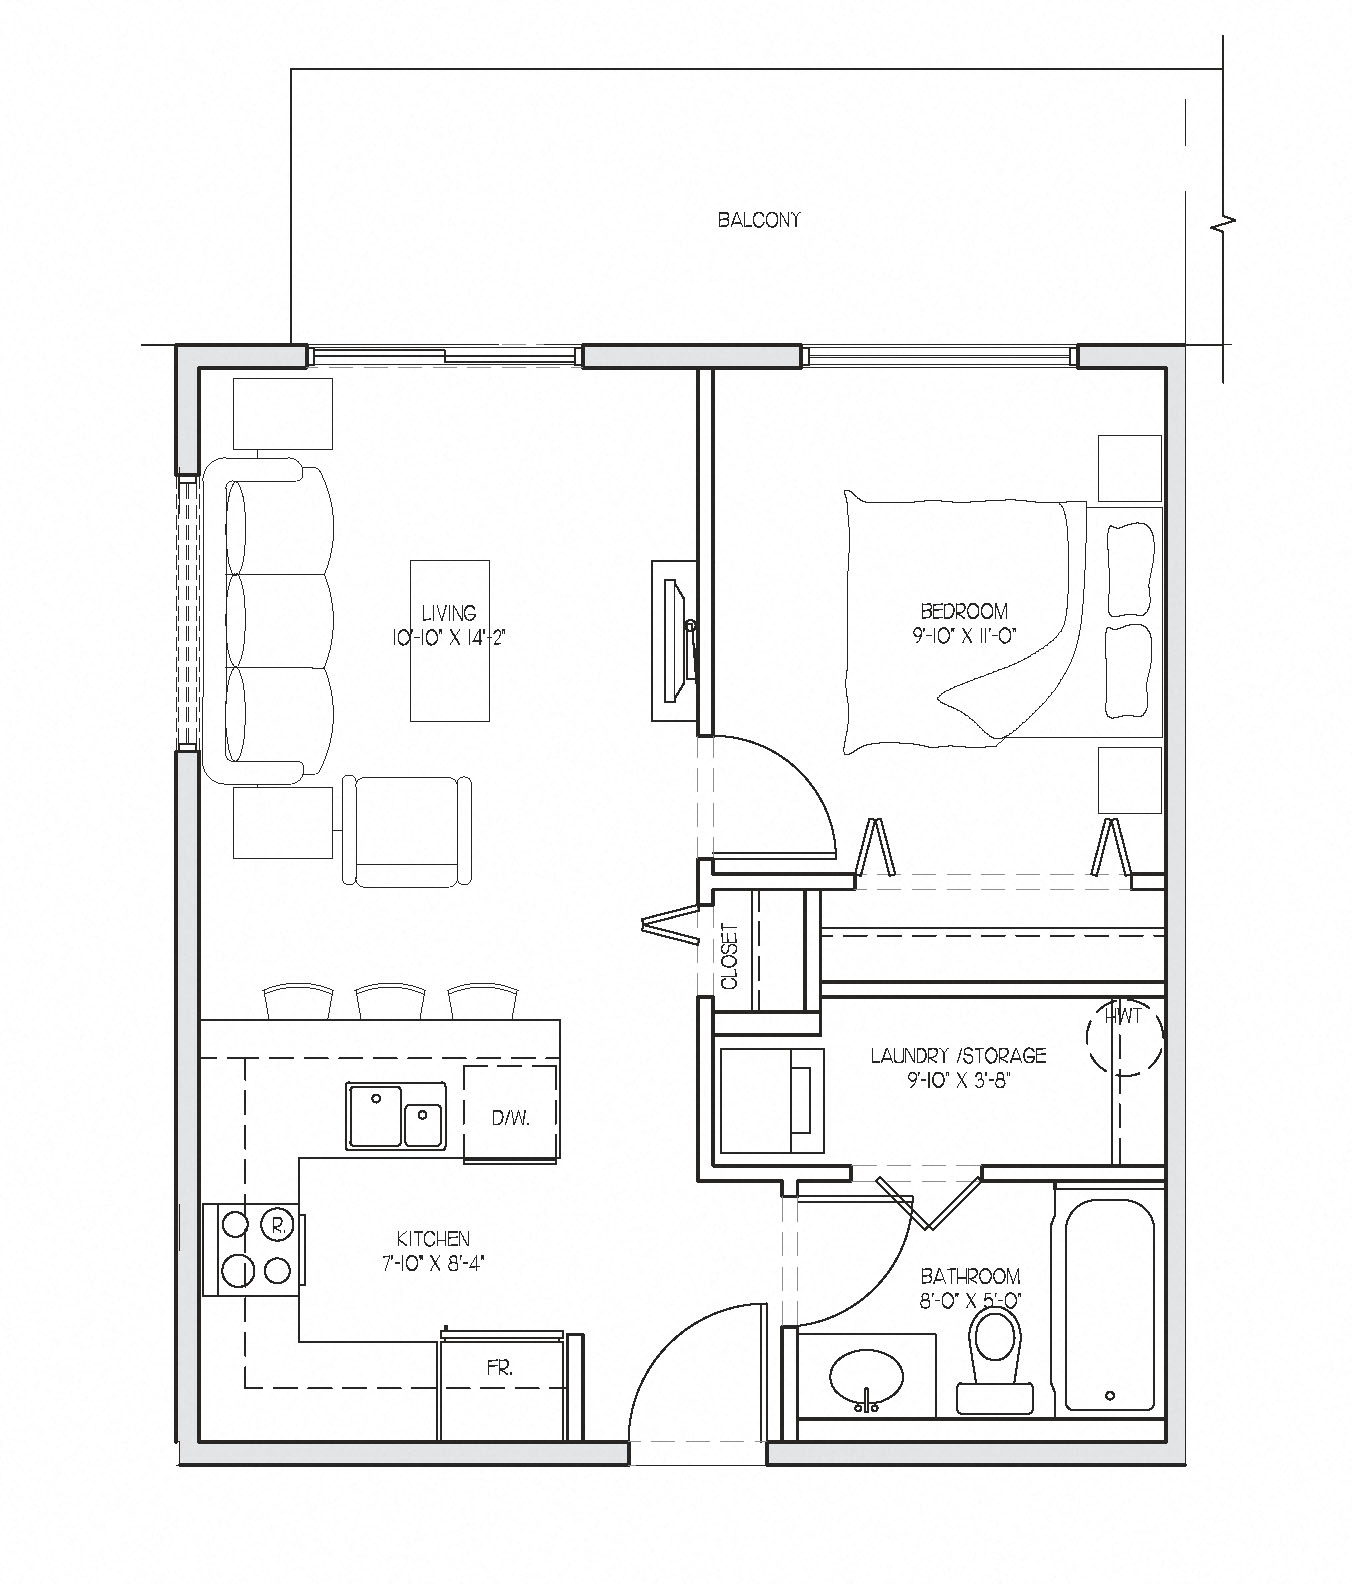 Floor Plans Of Summerhill Place In Nanaimo, BC